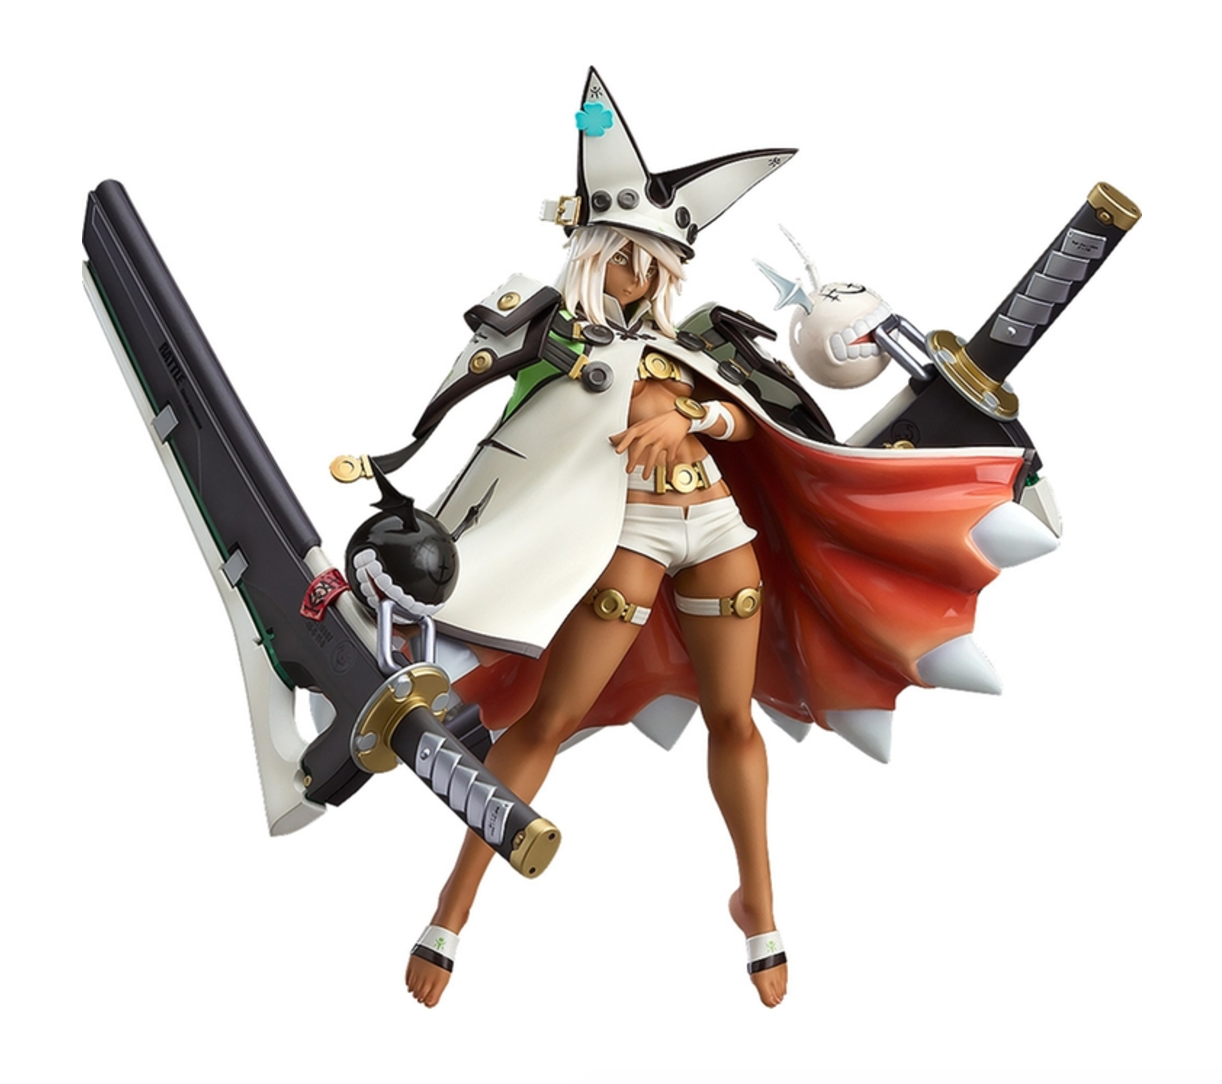 Image 1 for Guilty Gear Xrd -Sign- - Ramlethal Valentine - Wonderful Hobby Selection - 1/7